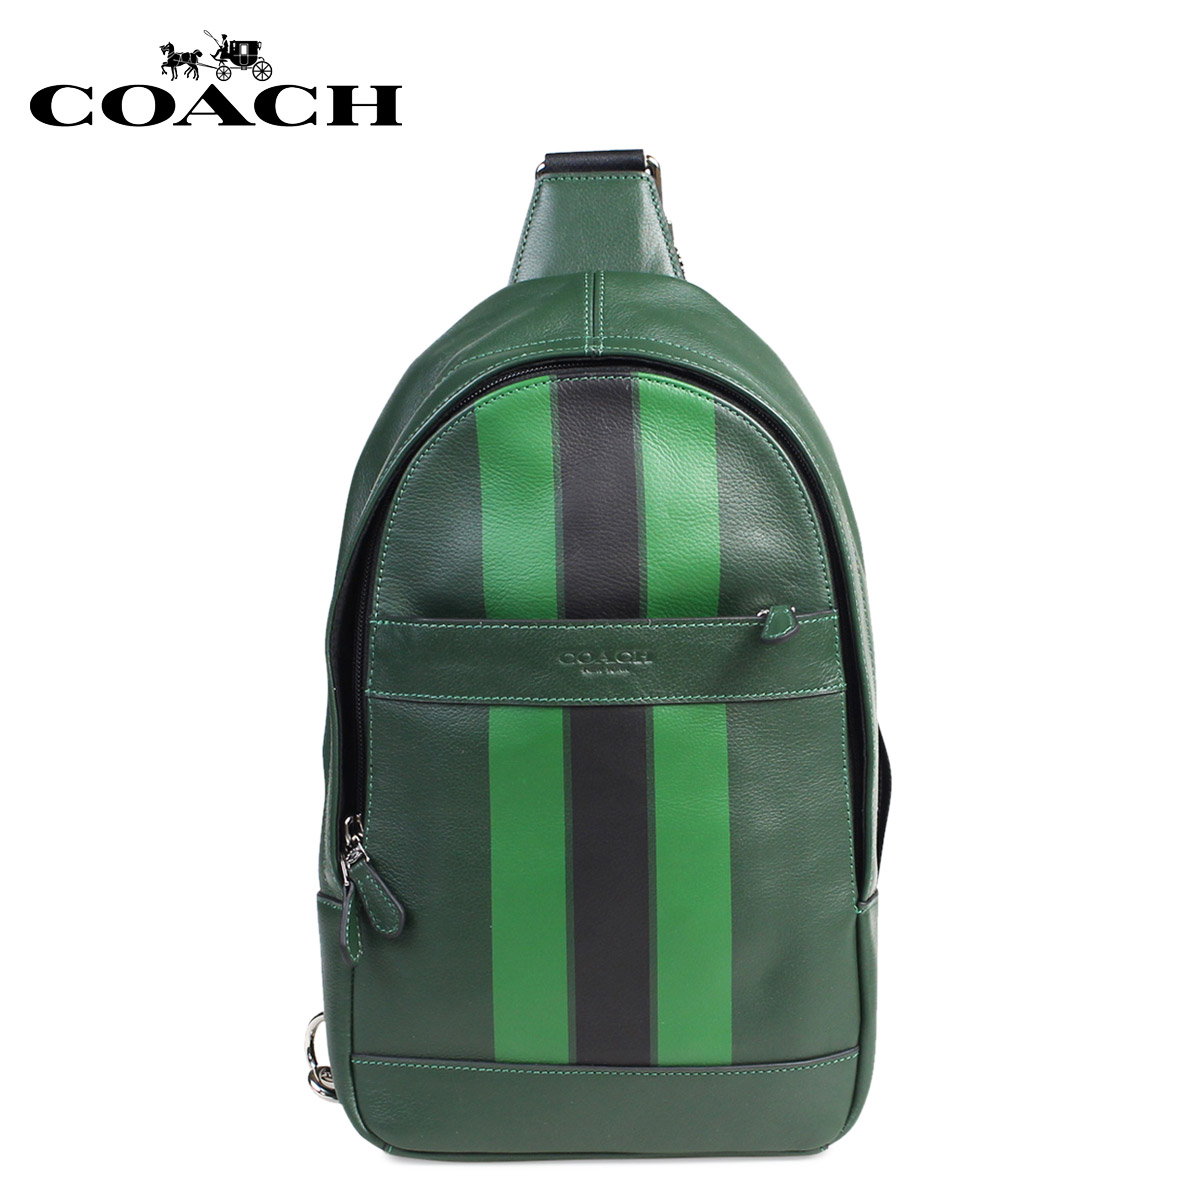 Take a coach coach bag men body bag shoulder bag slant one shoulder 2way f72226 green 7 19 shinnyu load